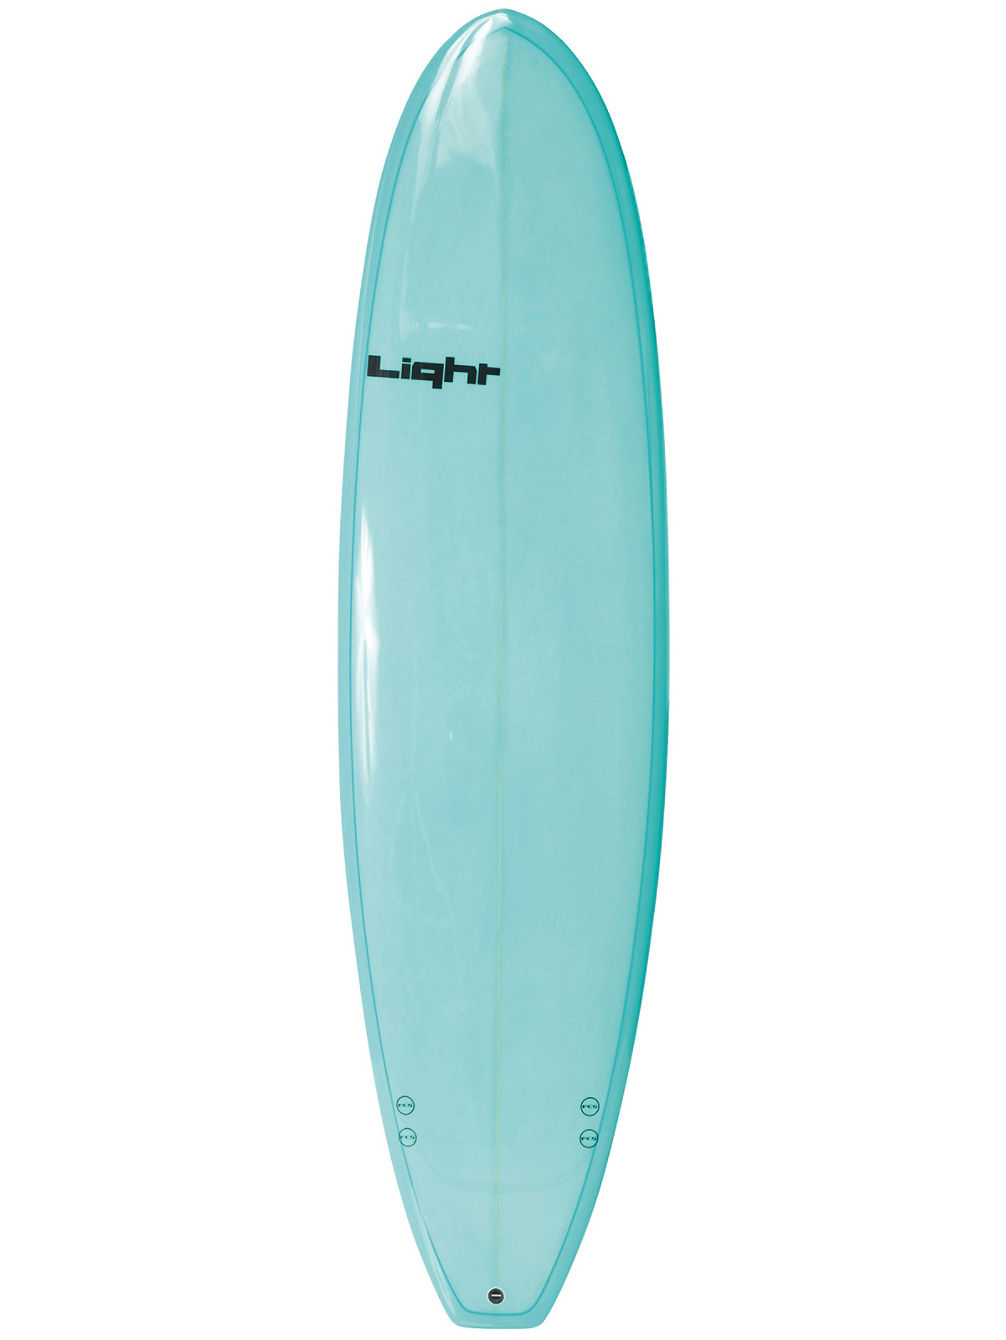 WTF Resin Tint 7.0 Surfboard